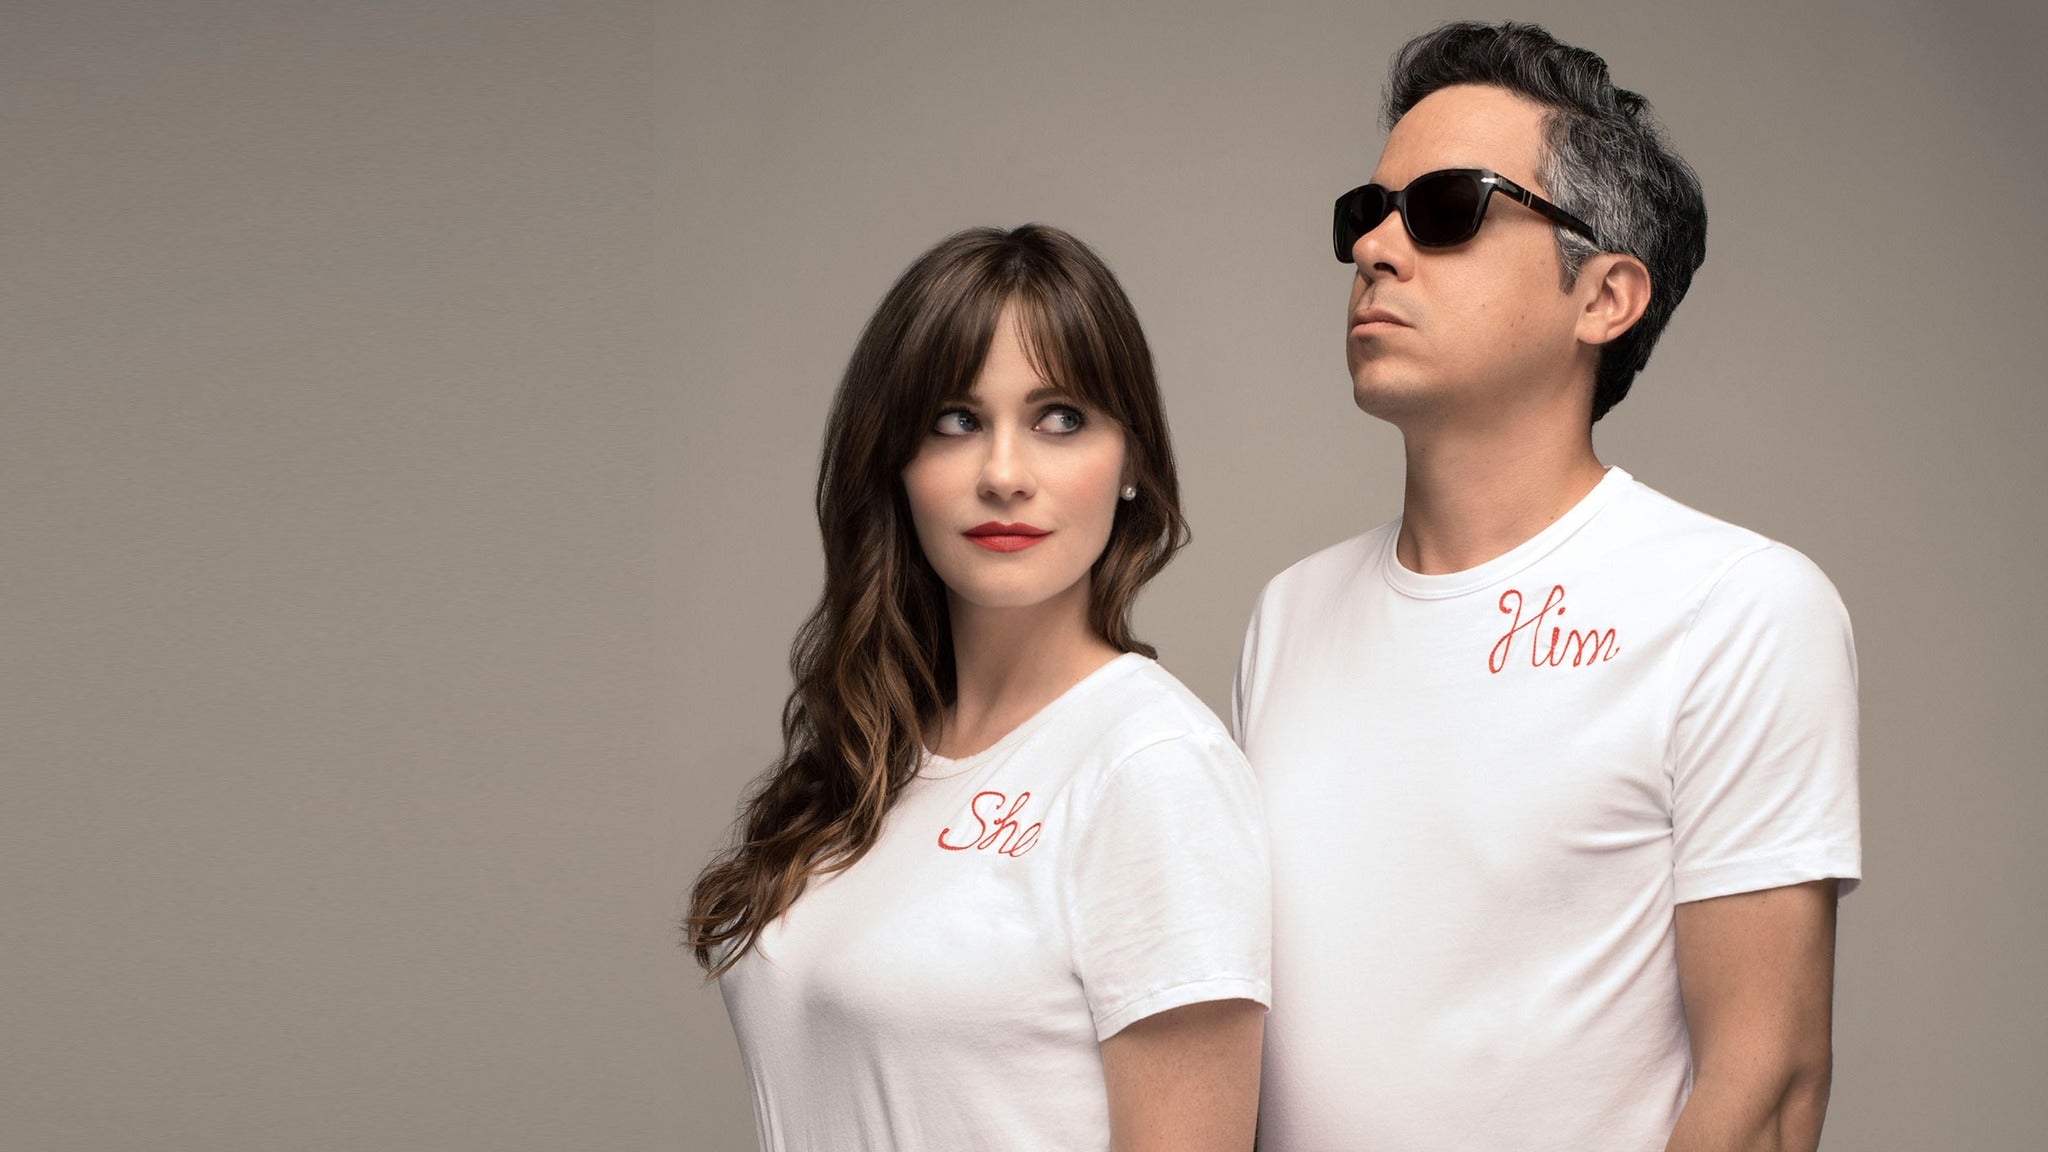 She & Him at The Masonic